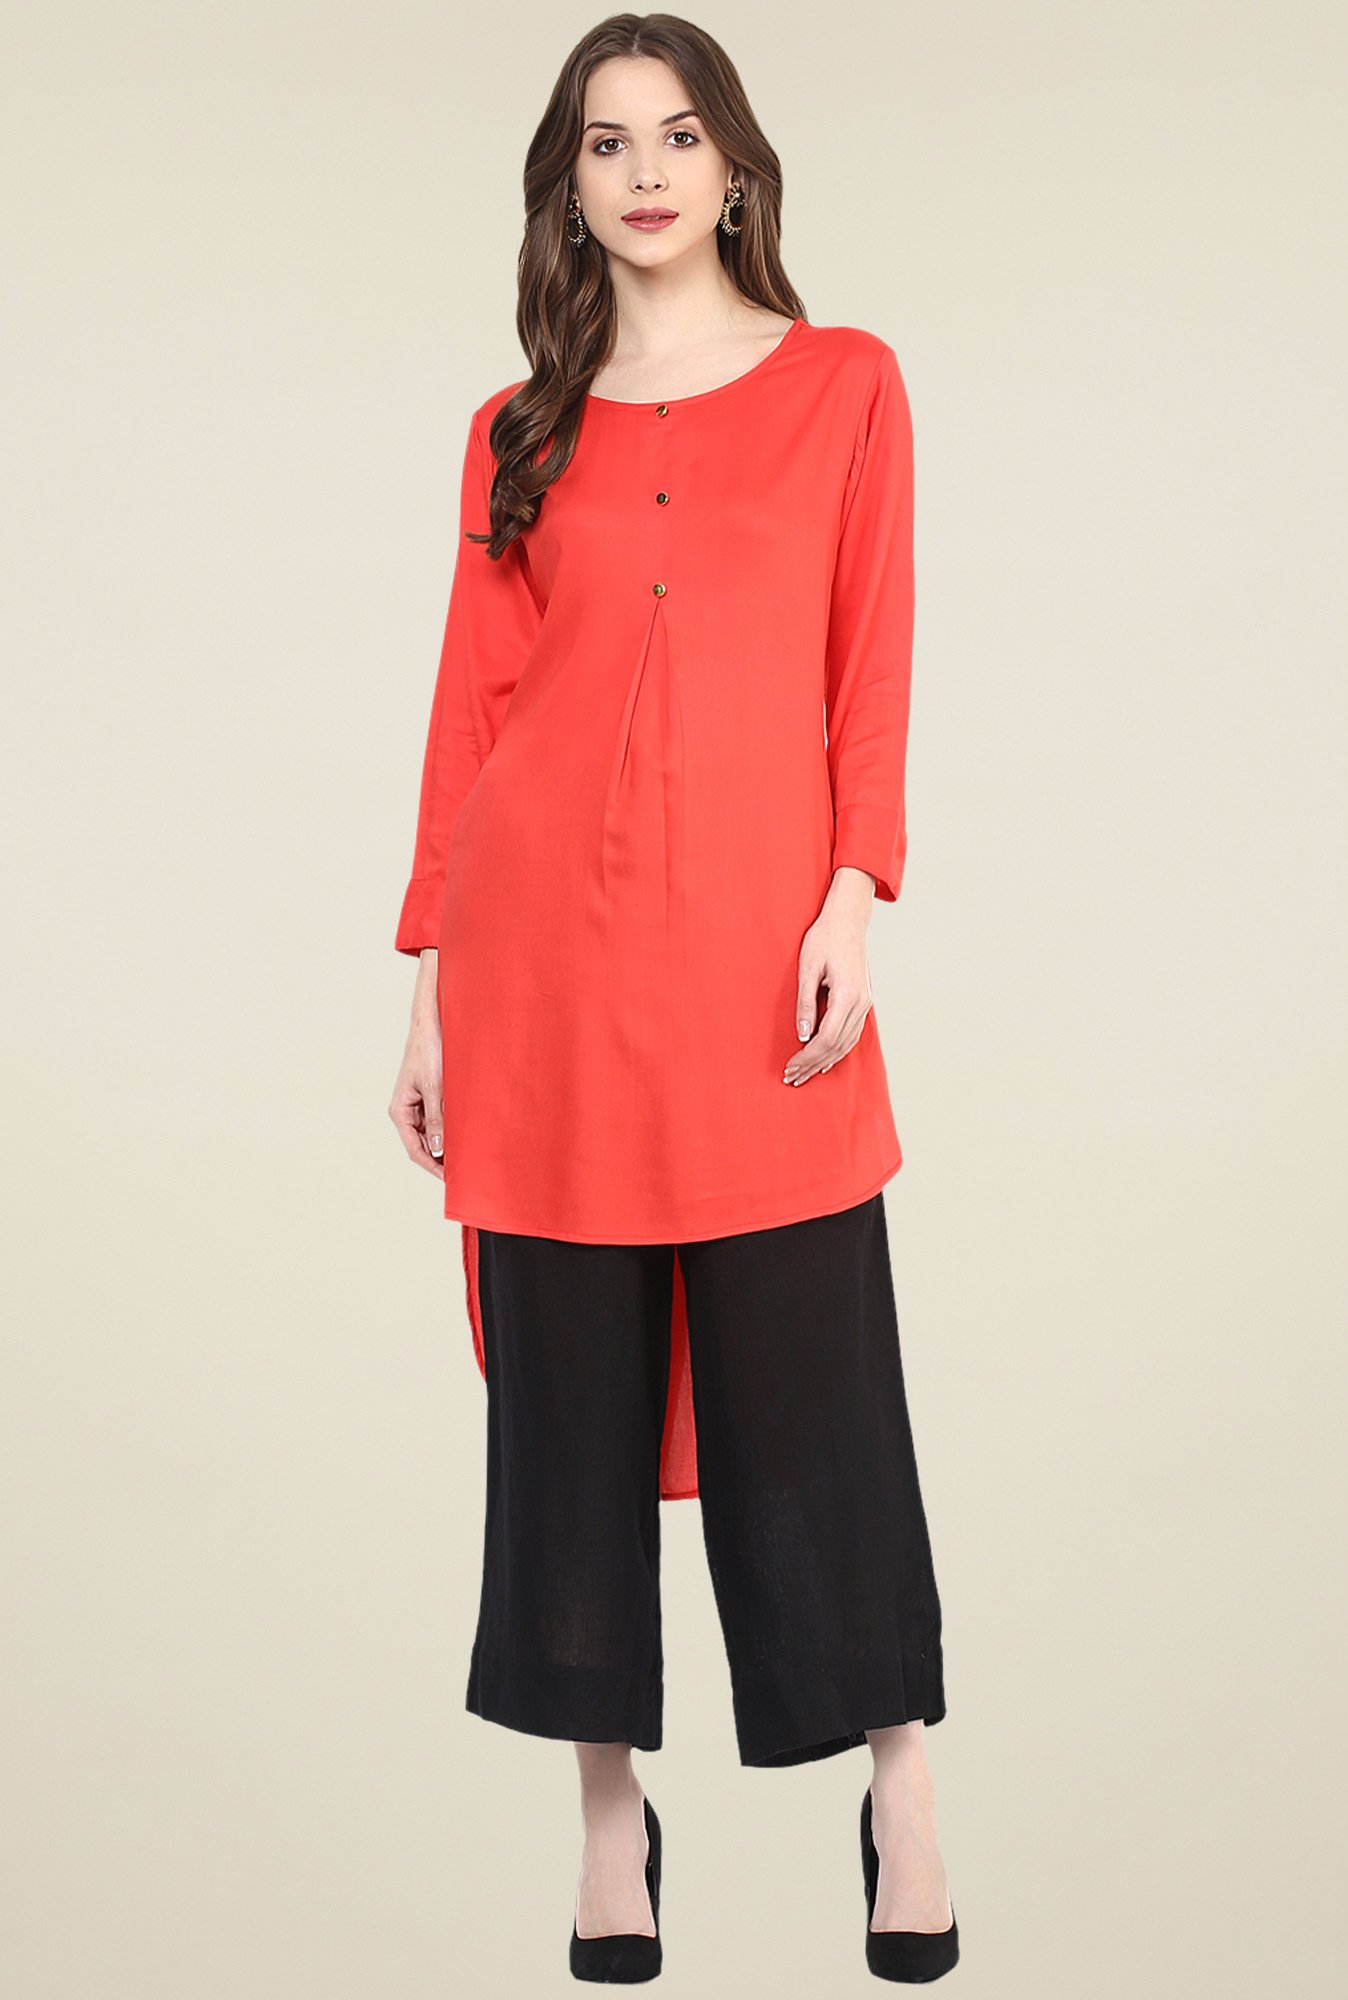 Pannkh Red Round Neck Kurta